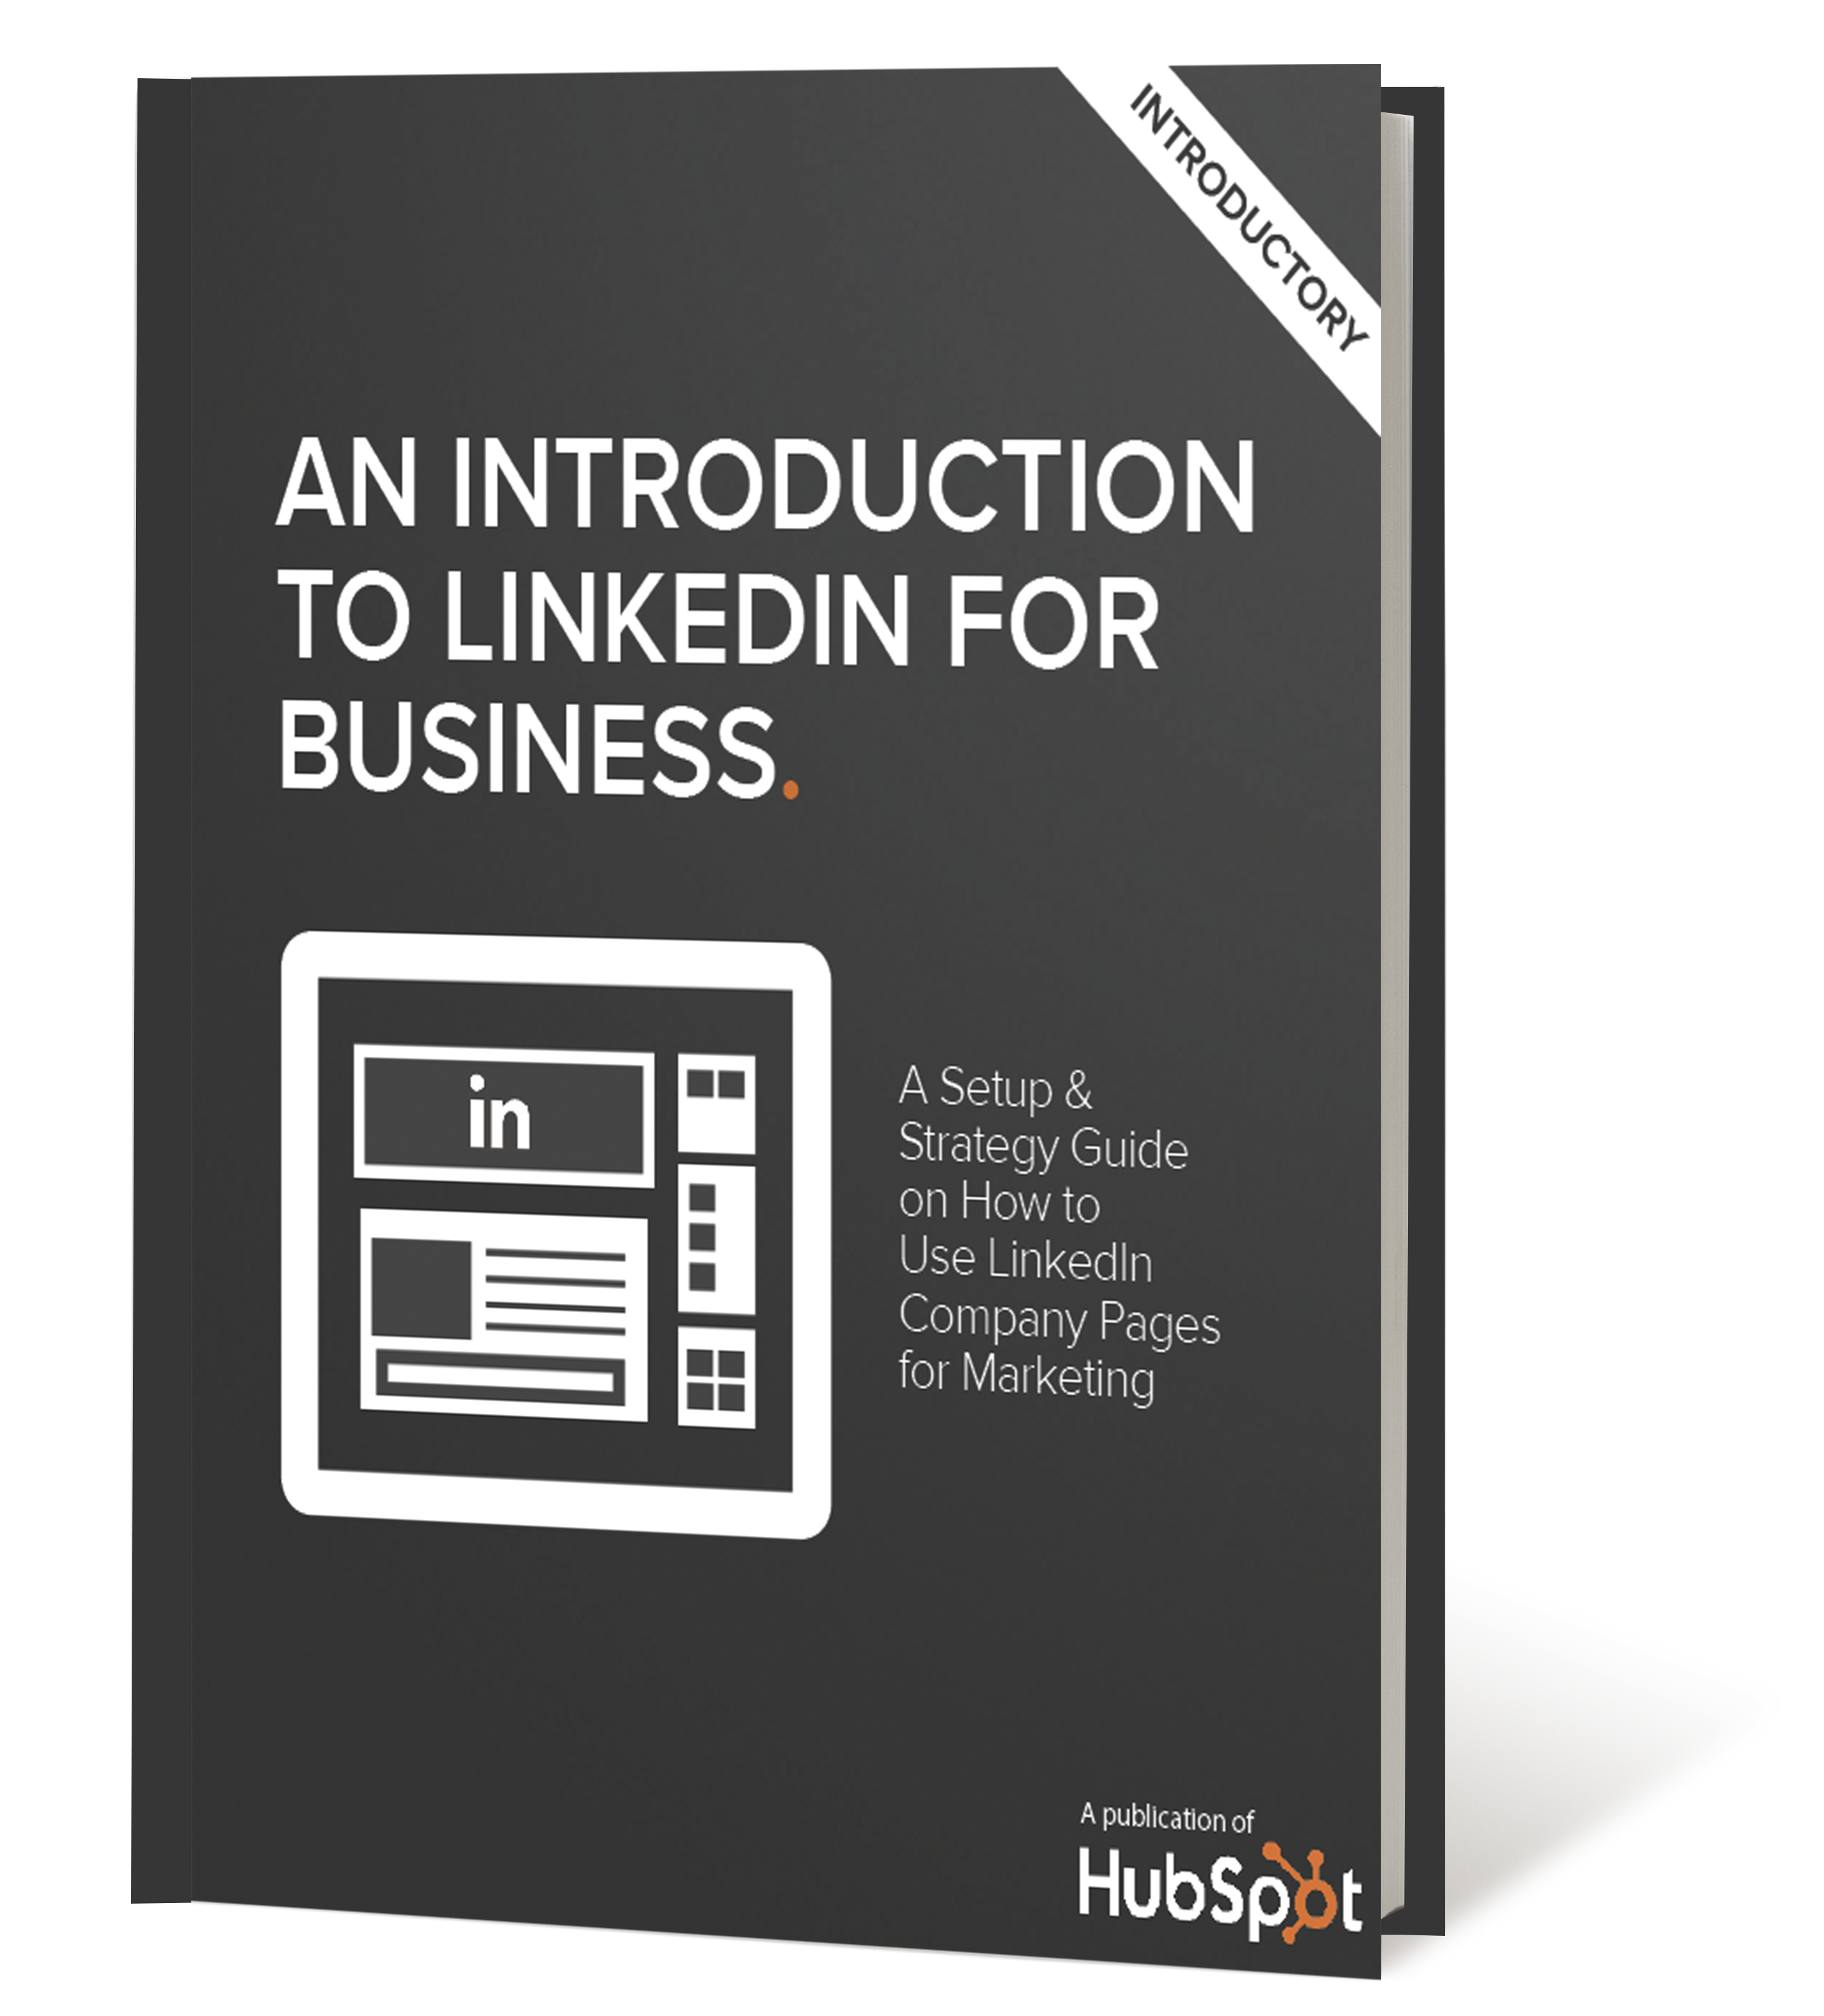 An-introduction-to-linkedin-for-business